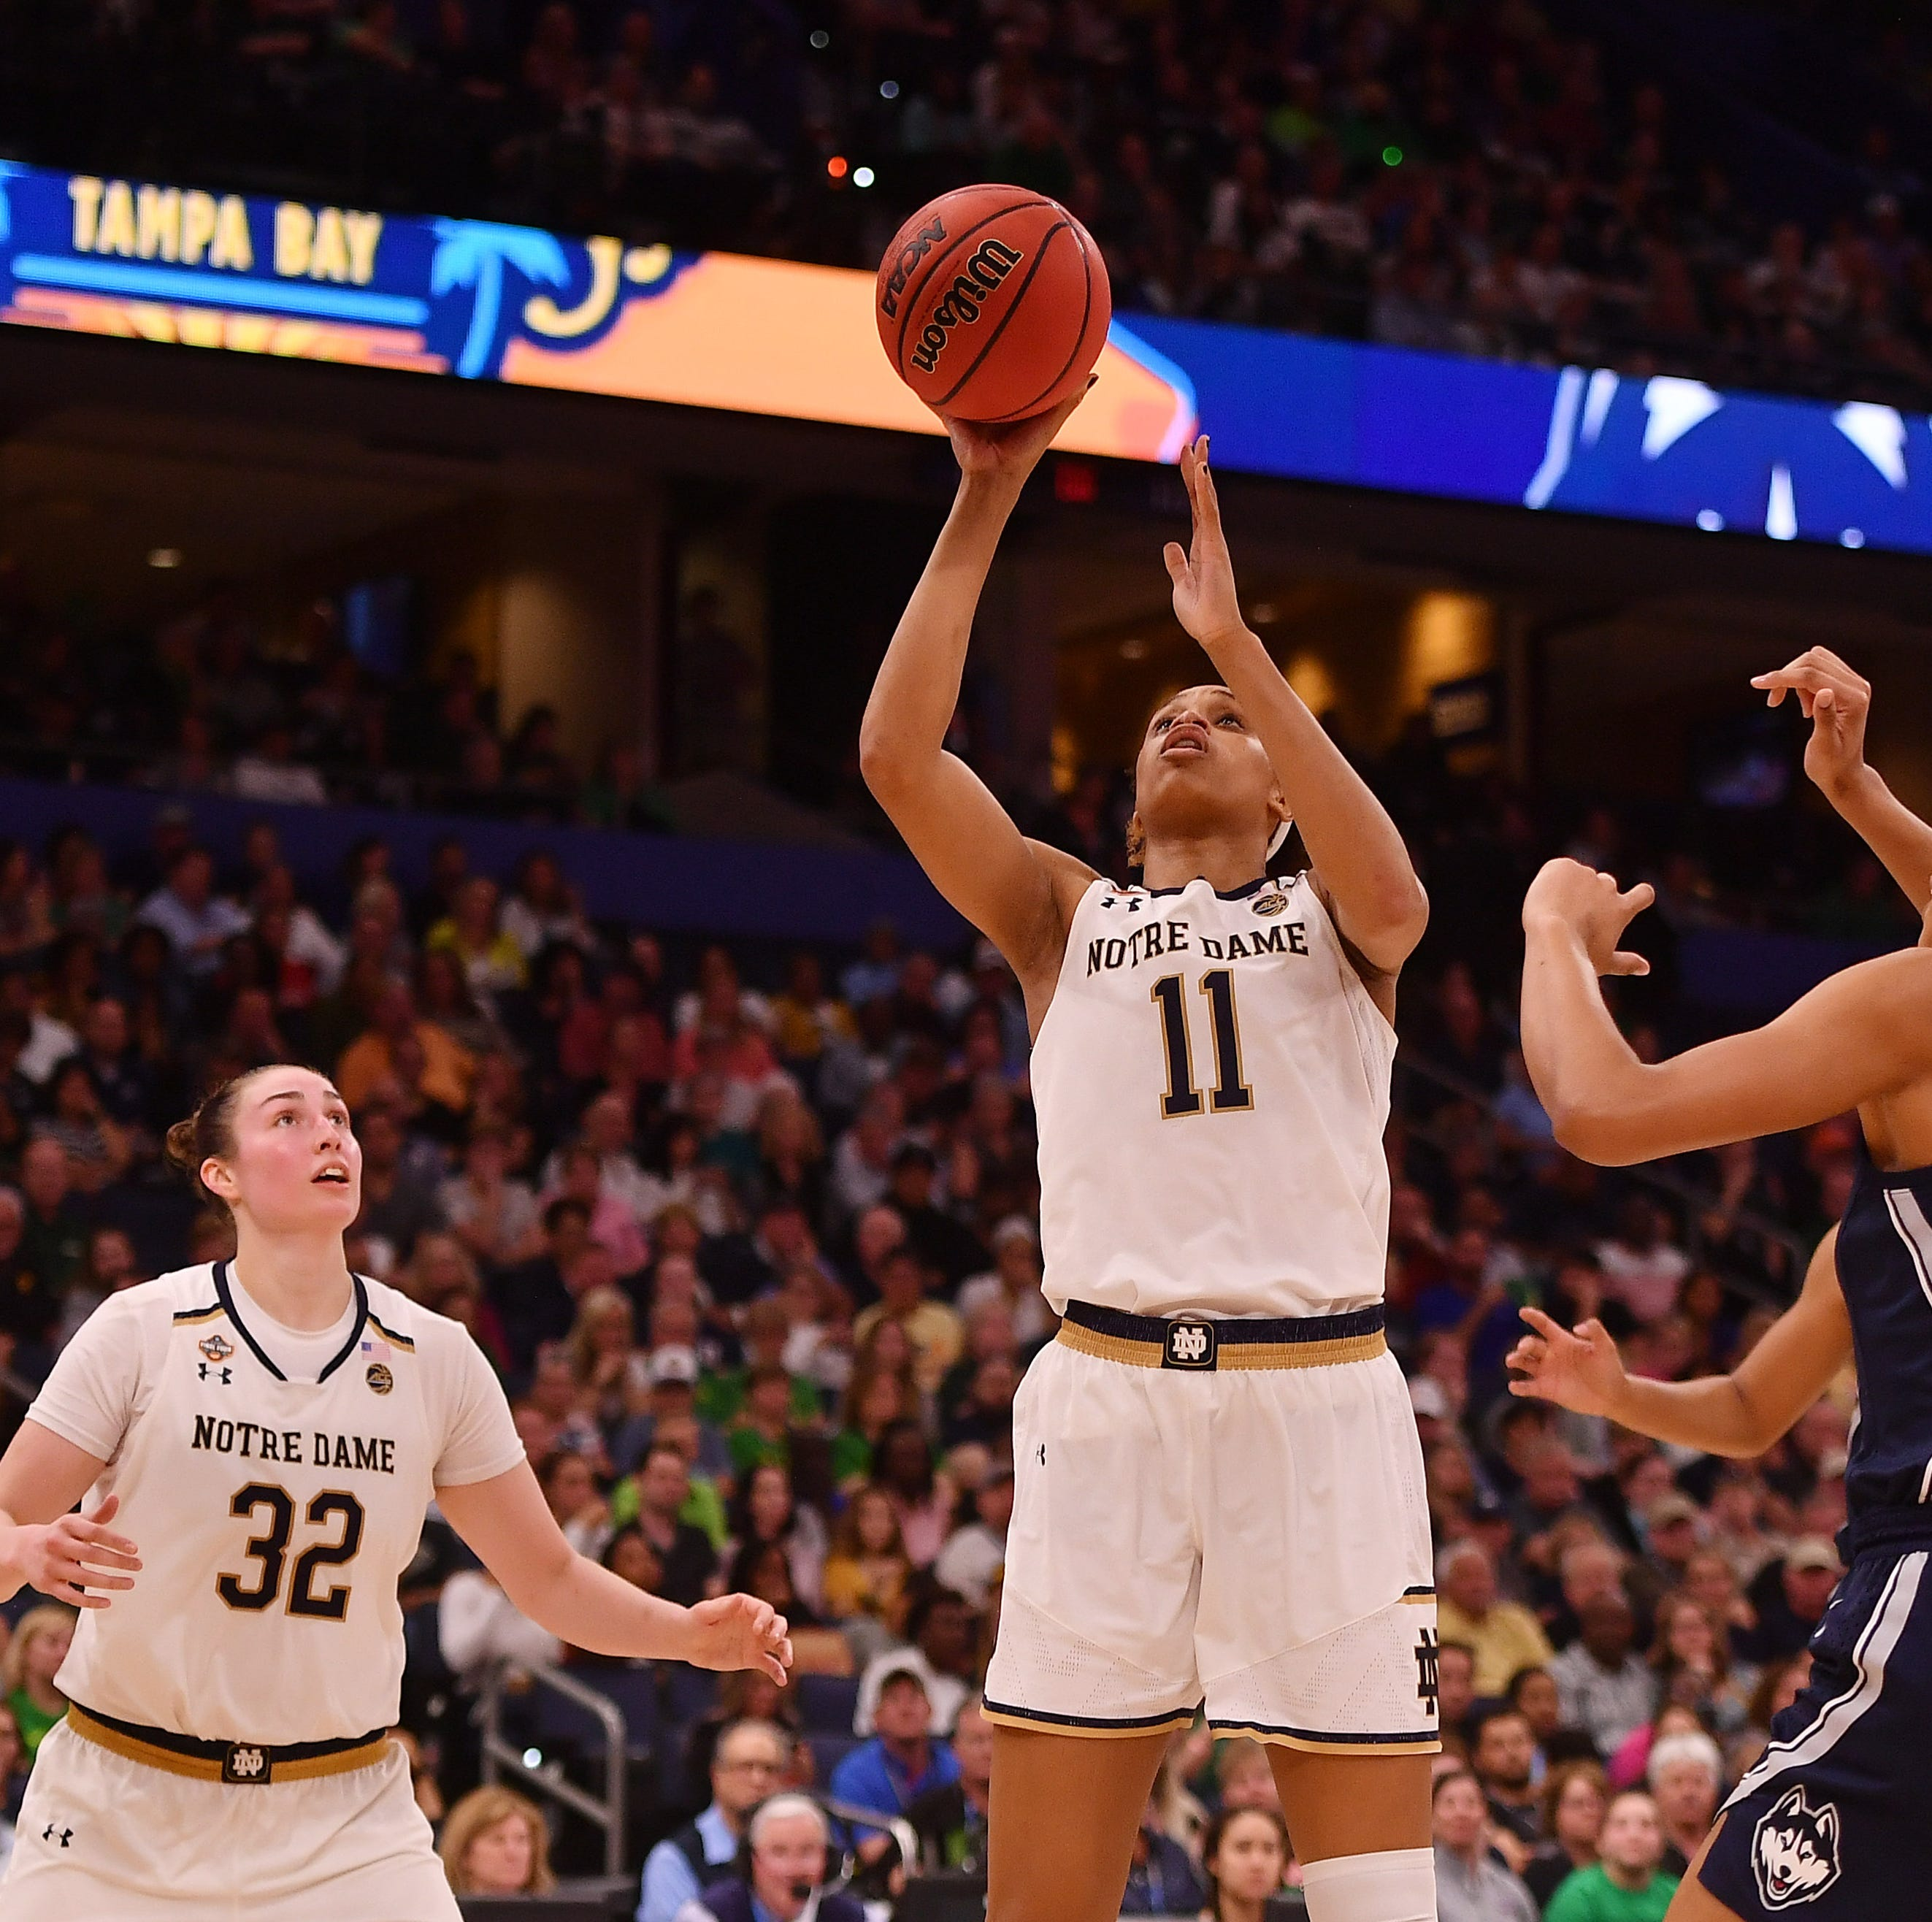 Notre Dame women headed back to title game after late rally to knock off UConn